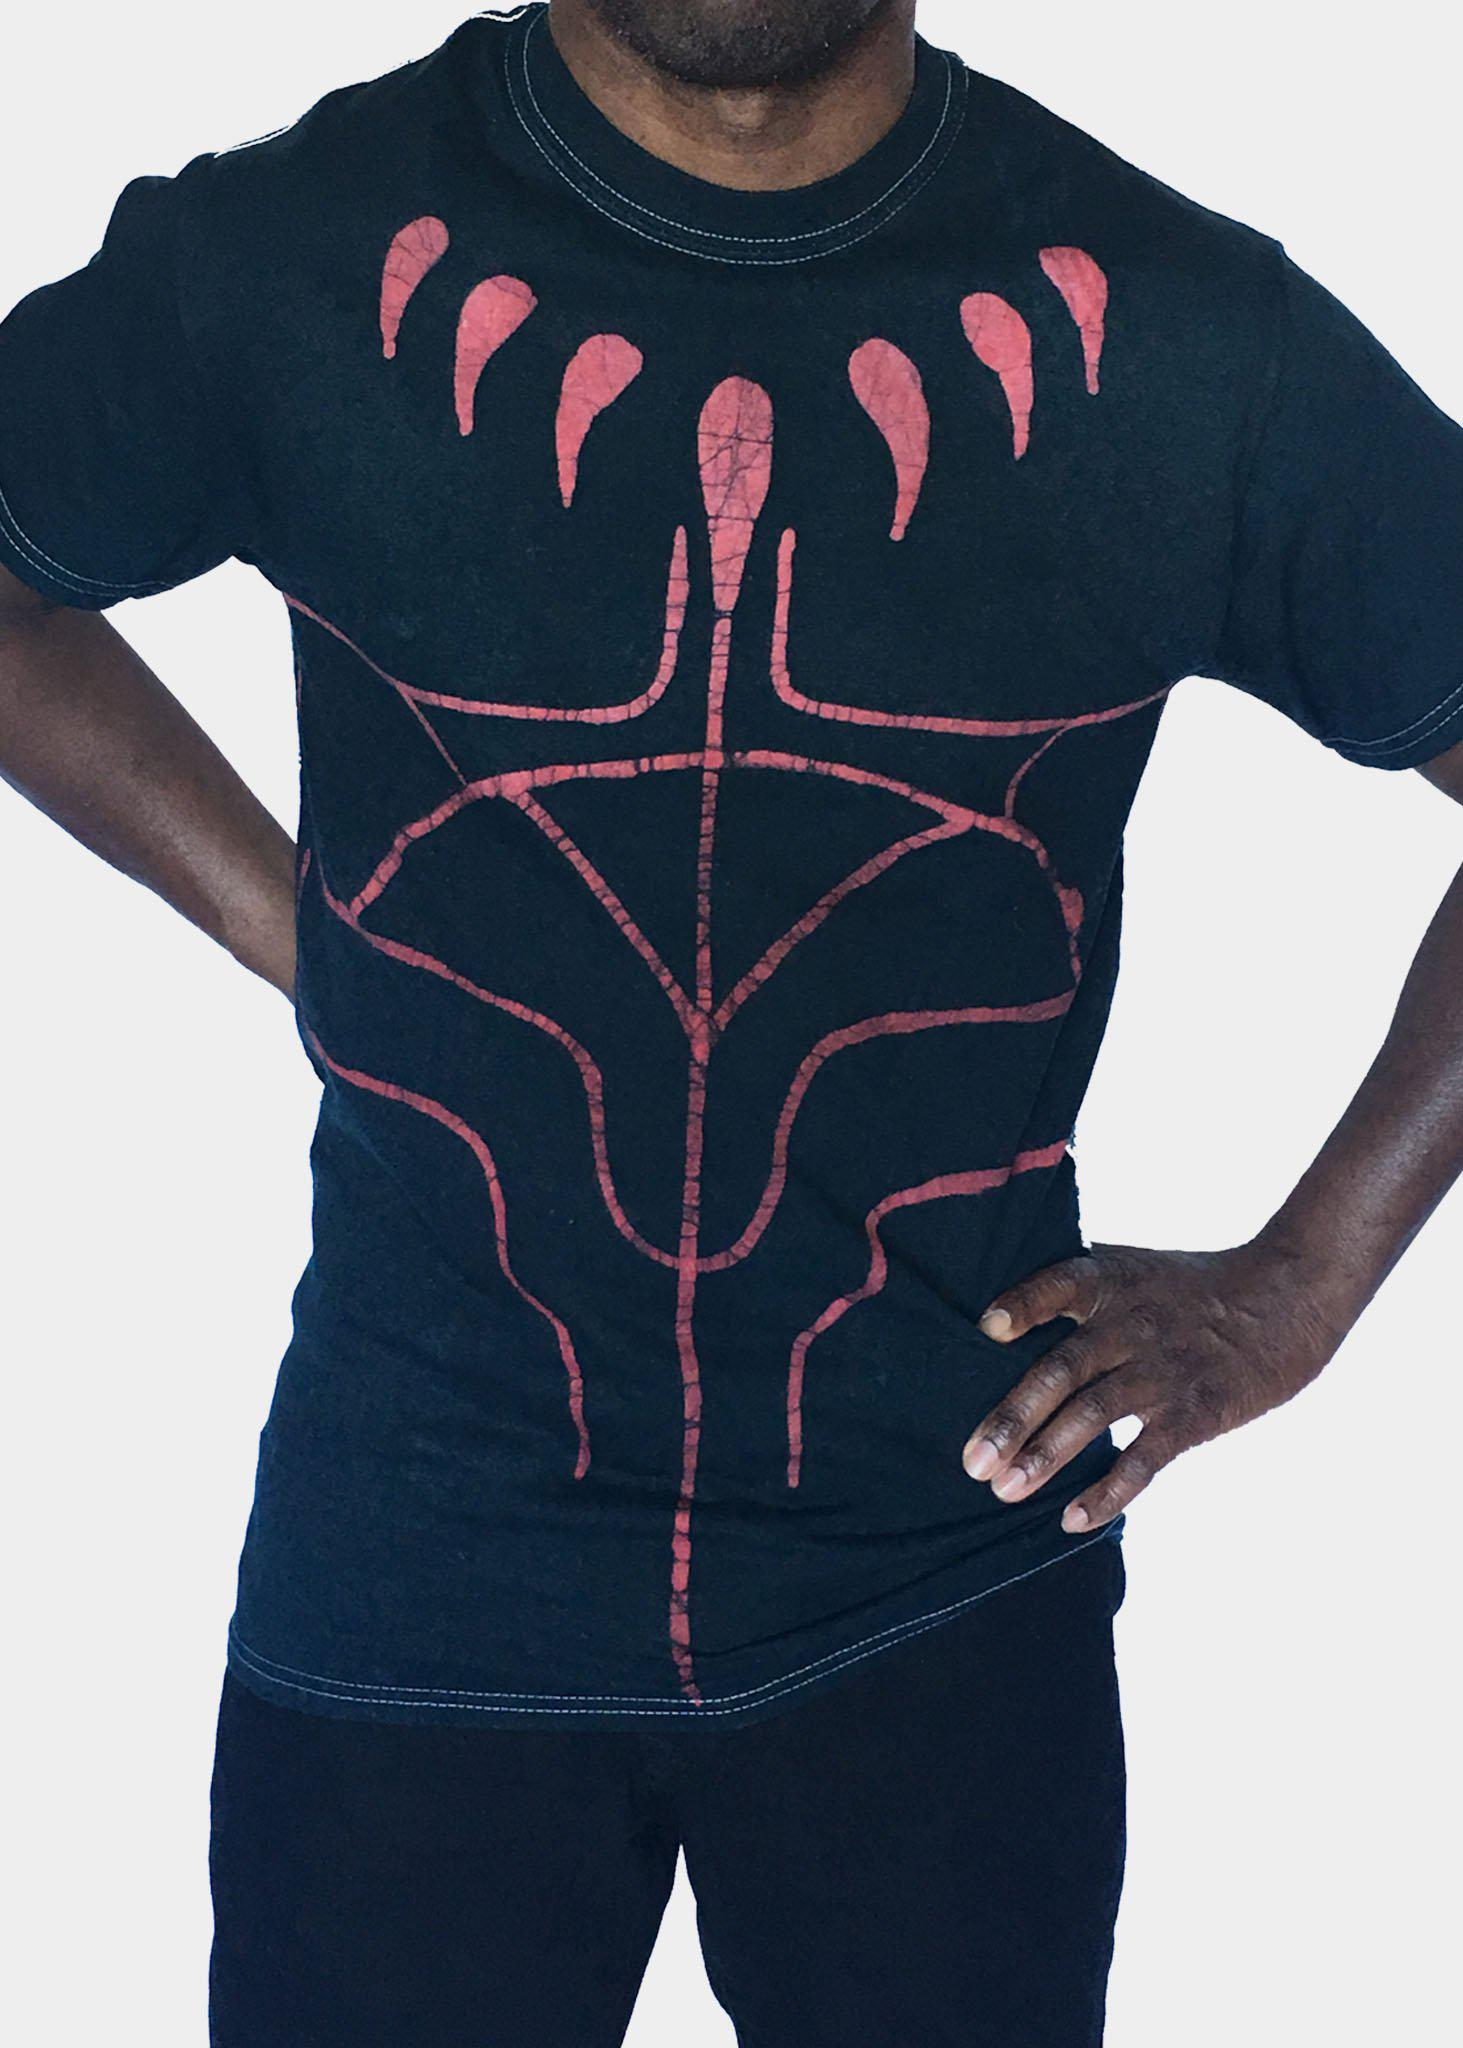 Green and Red Short  Sleeve T-shirt with Wakanda Claws